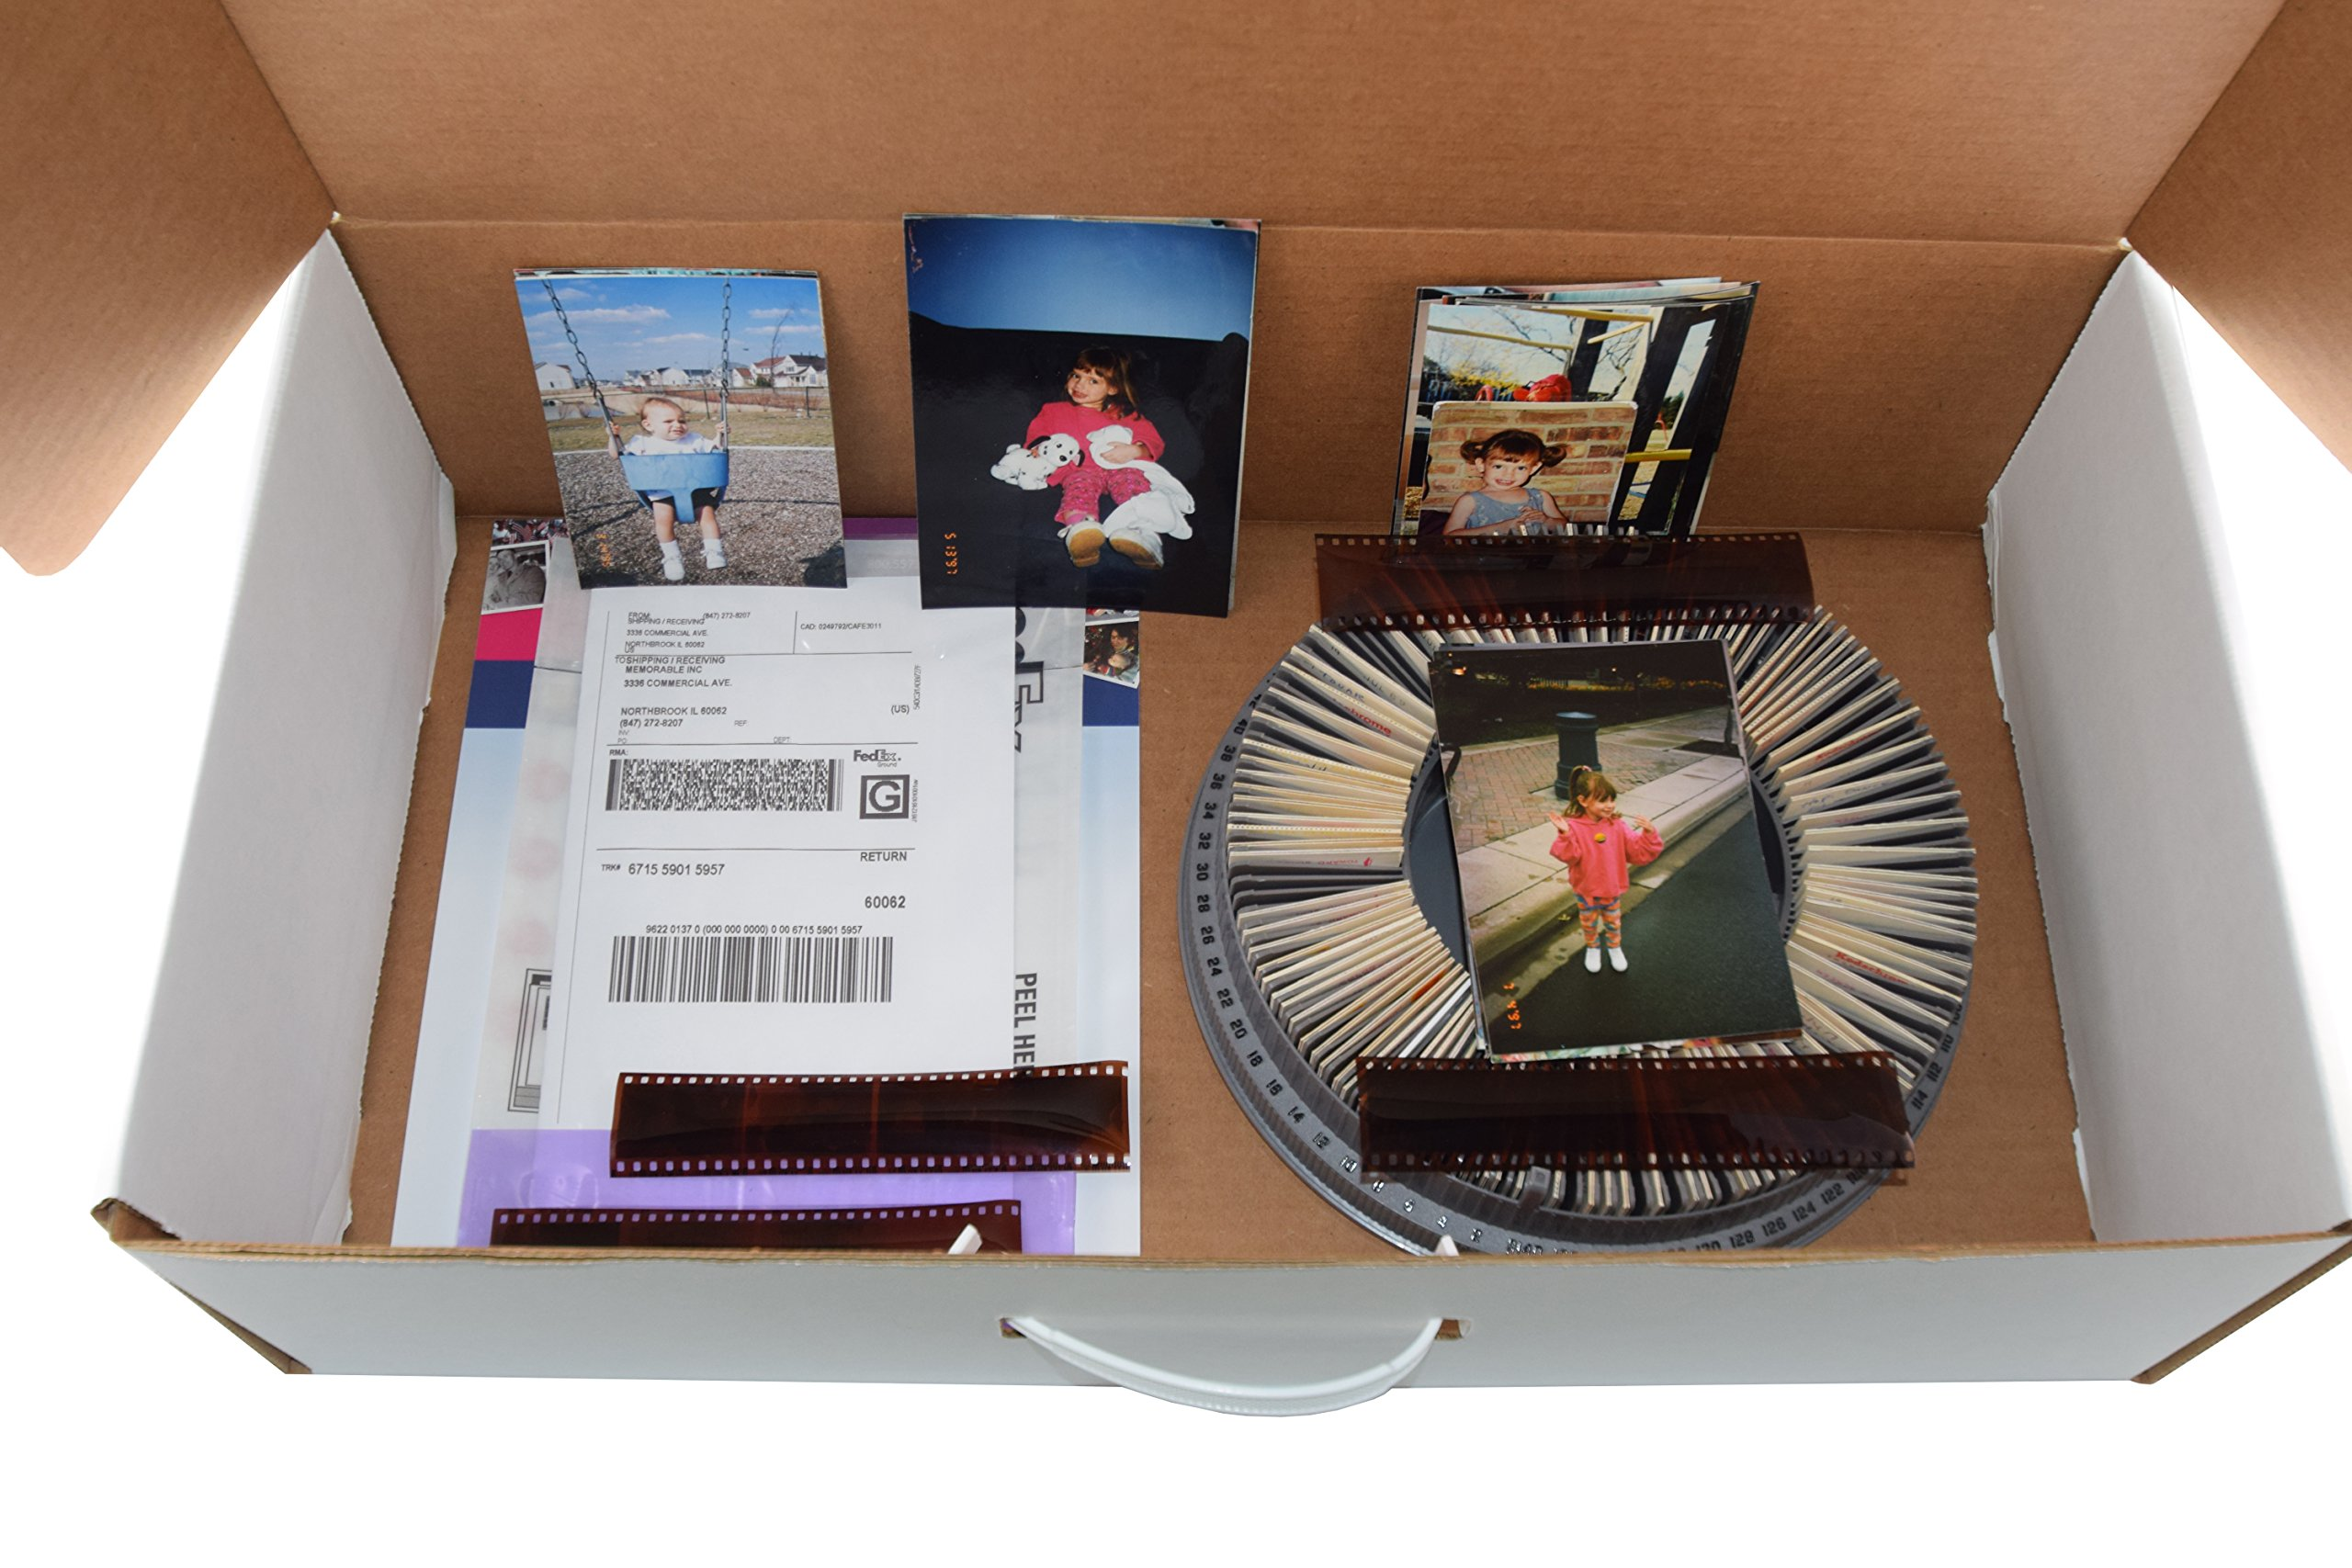 Memorable Image Scanning Service to Prime Photos (5000 Photos) by Memorable (Image #2)